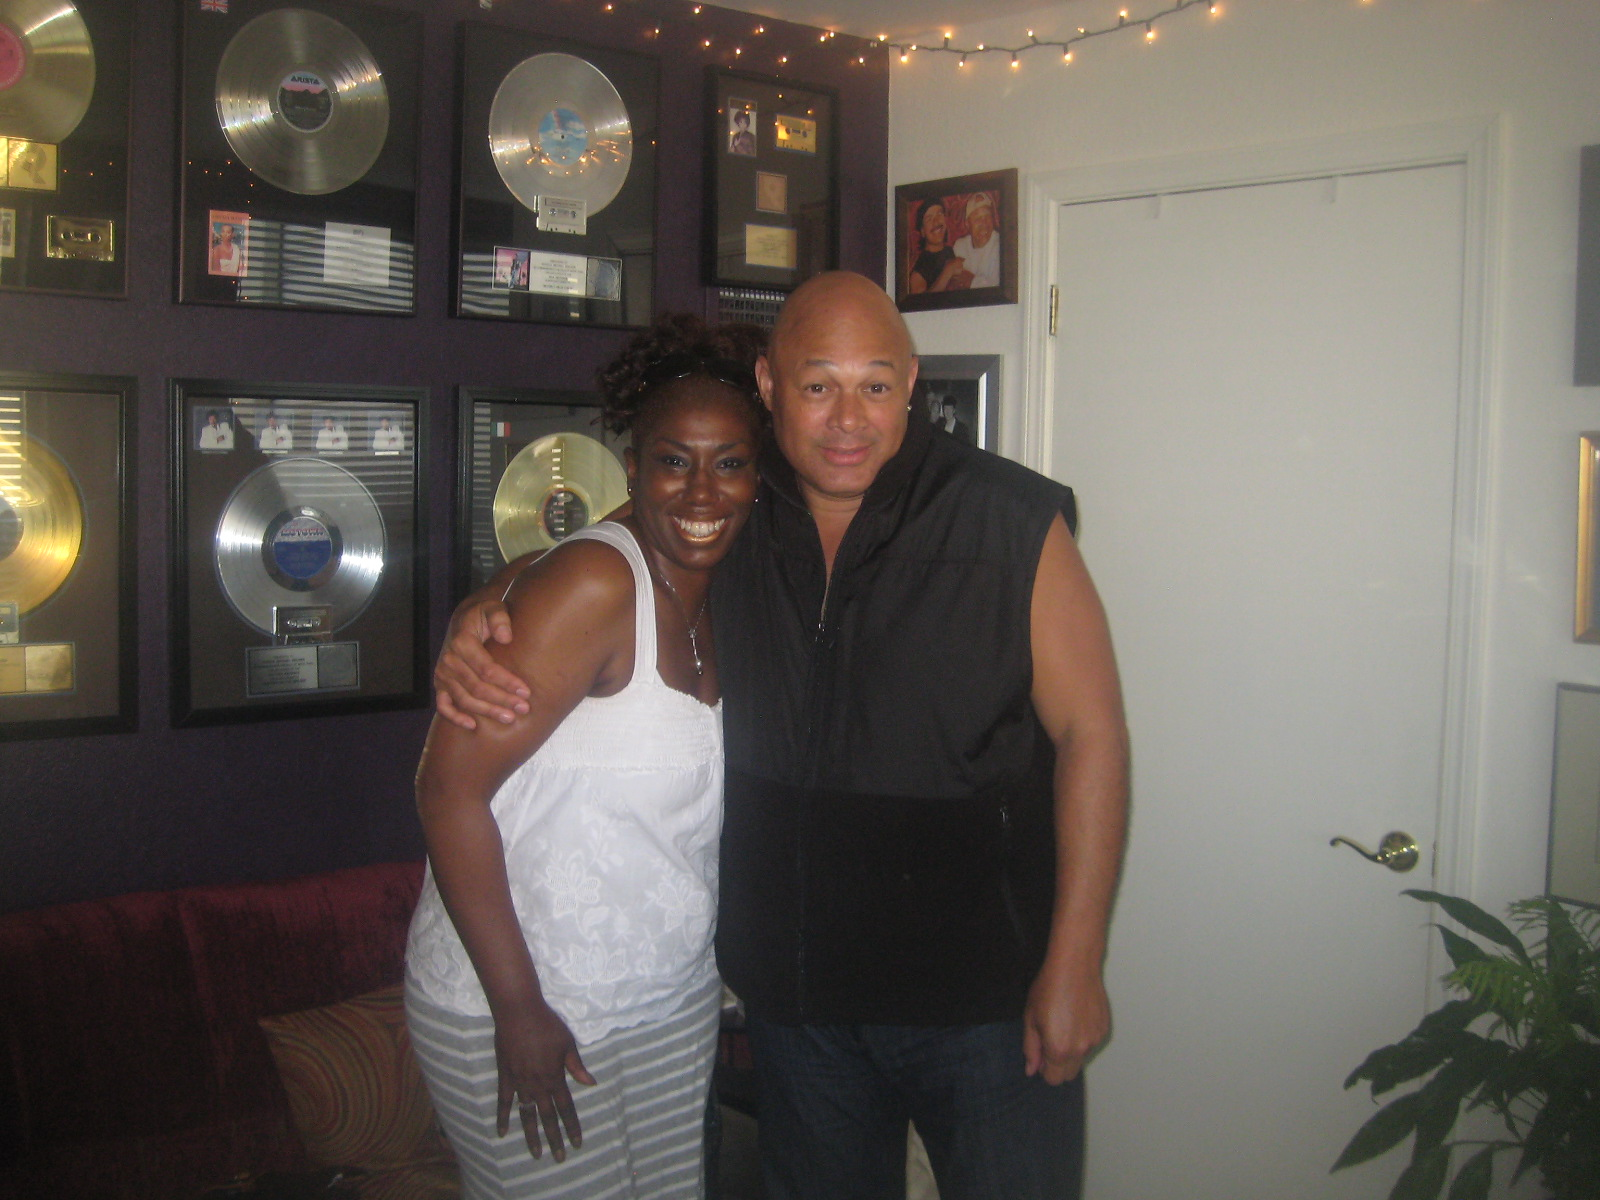 The amazing Narada Michael Walden!!!